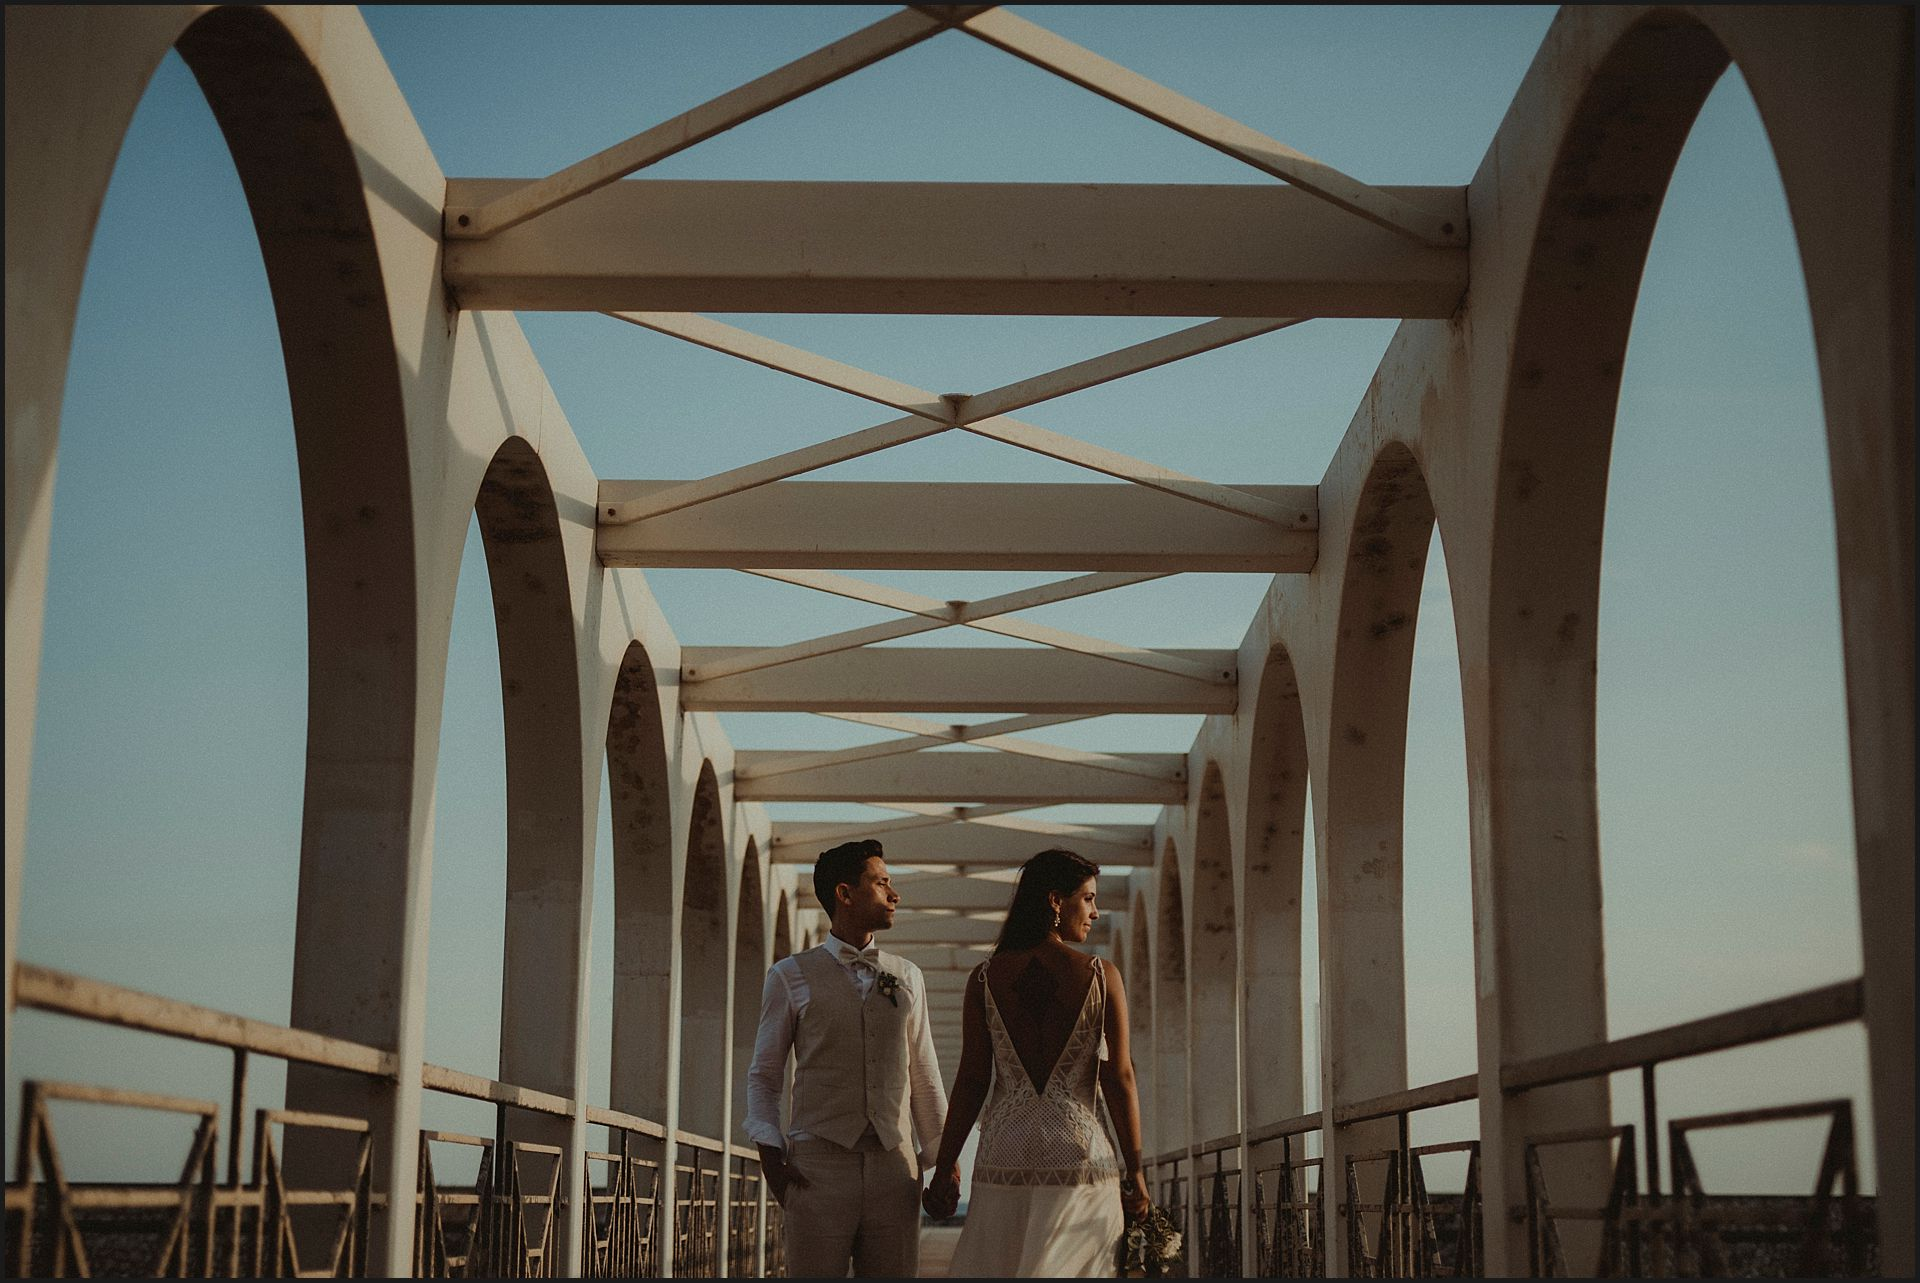 bride and groom, italy, bride, groom, hand in hand, wedding portrait, natural light, bridge, symmetry, grometries, seaside, sunset, warm light